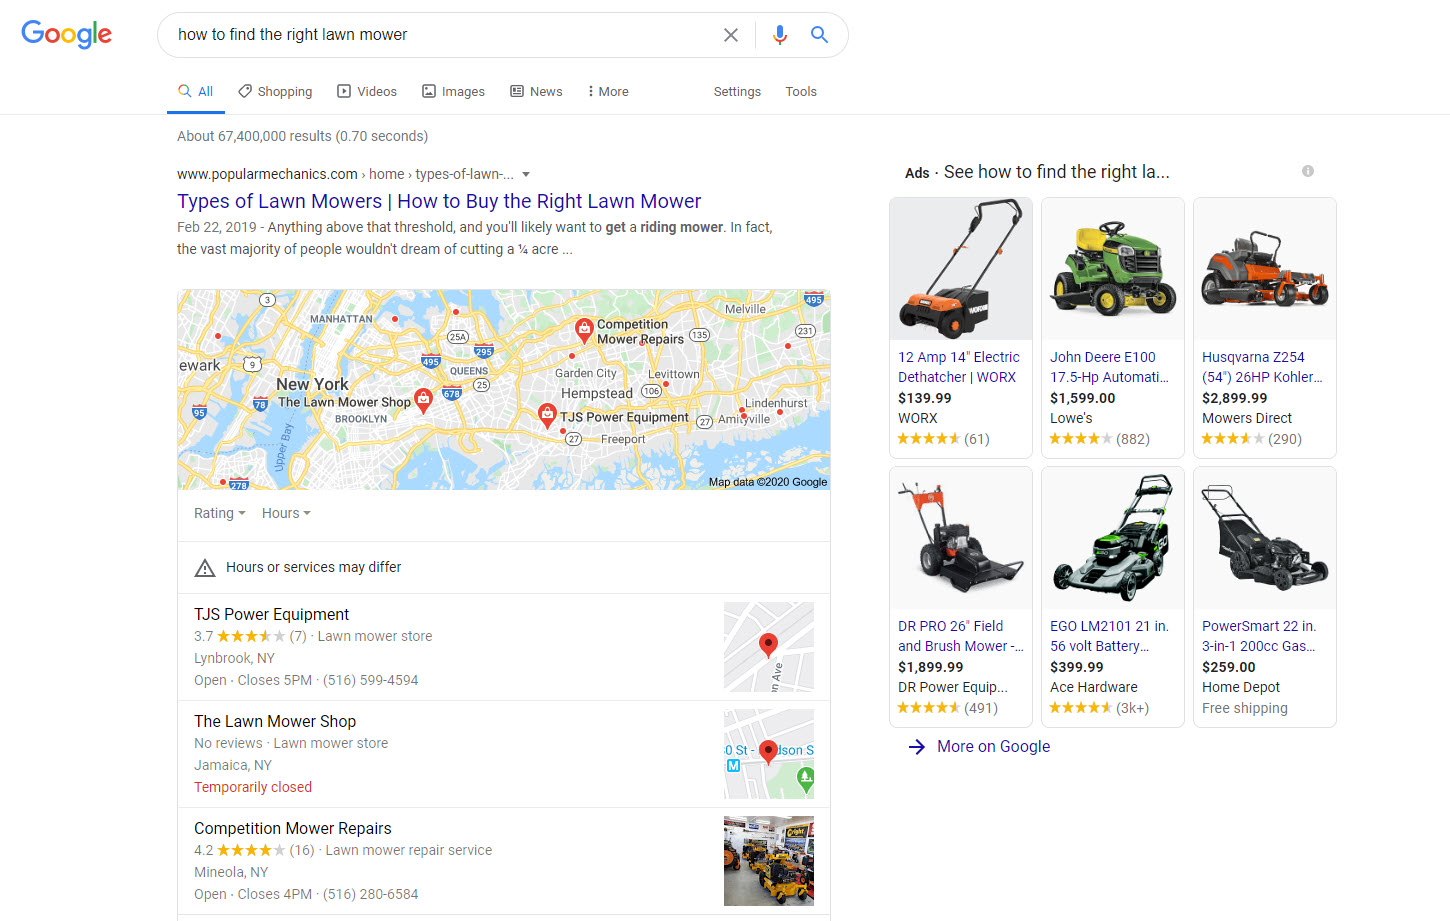 Products on Informational SERP